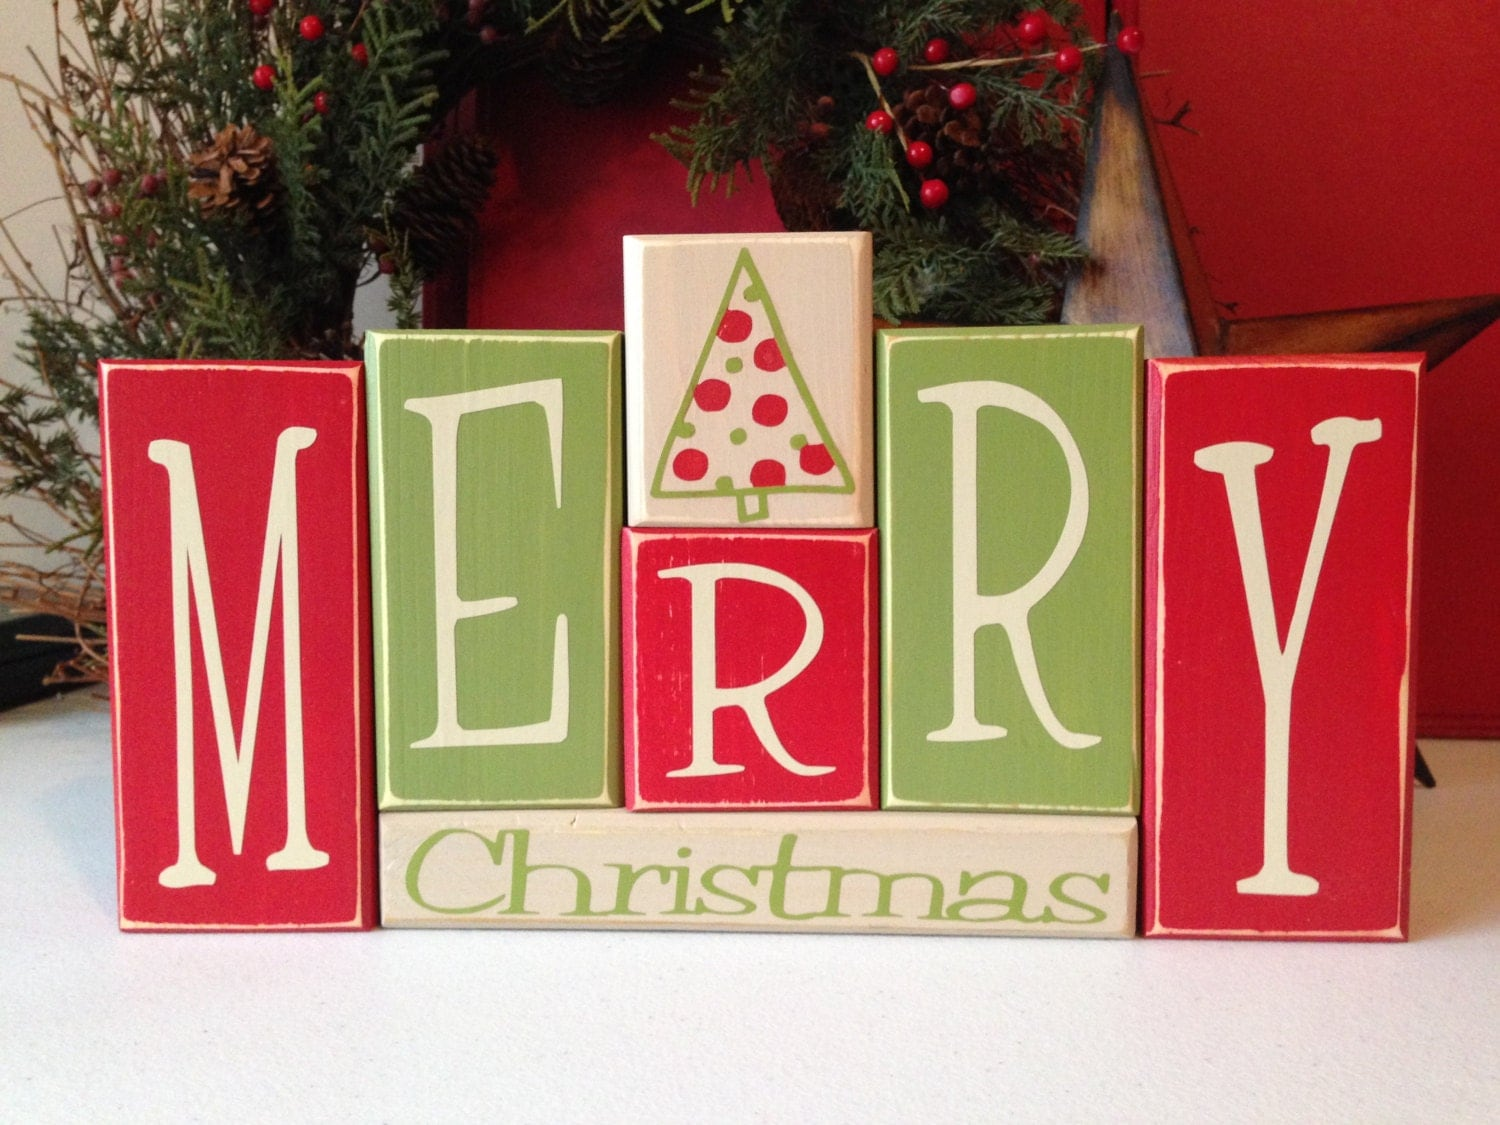 Merry Christmas Wood Blocks Sign By Fillintheblankspaces